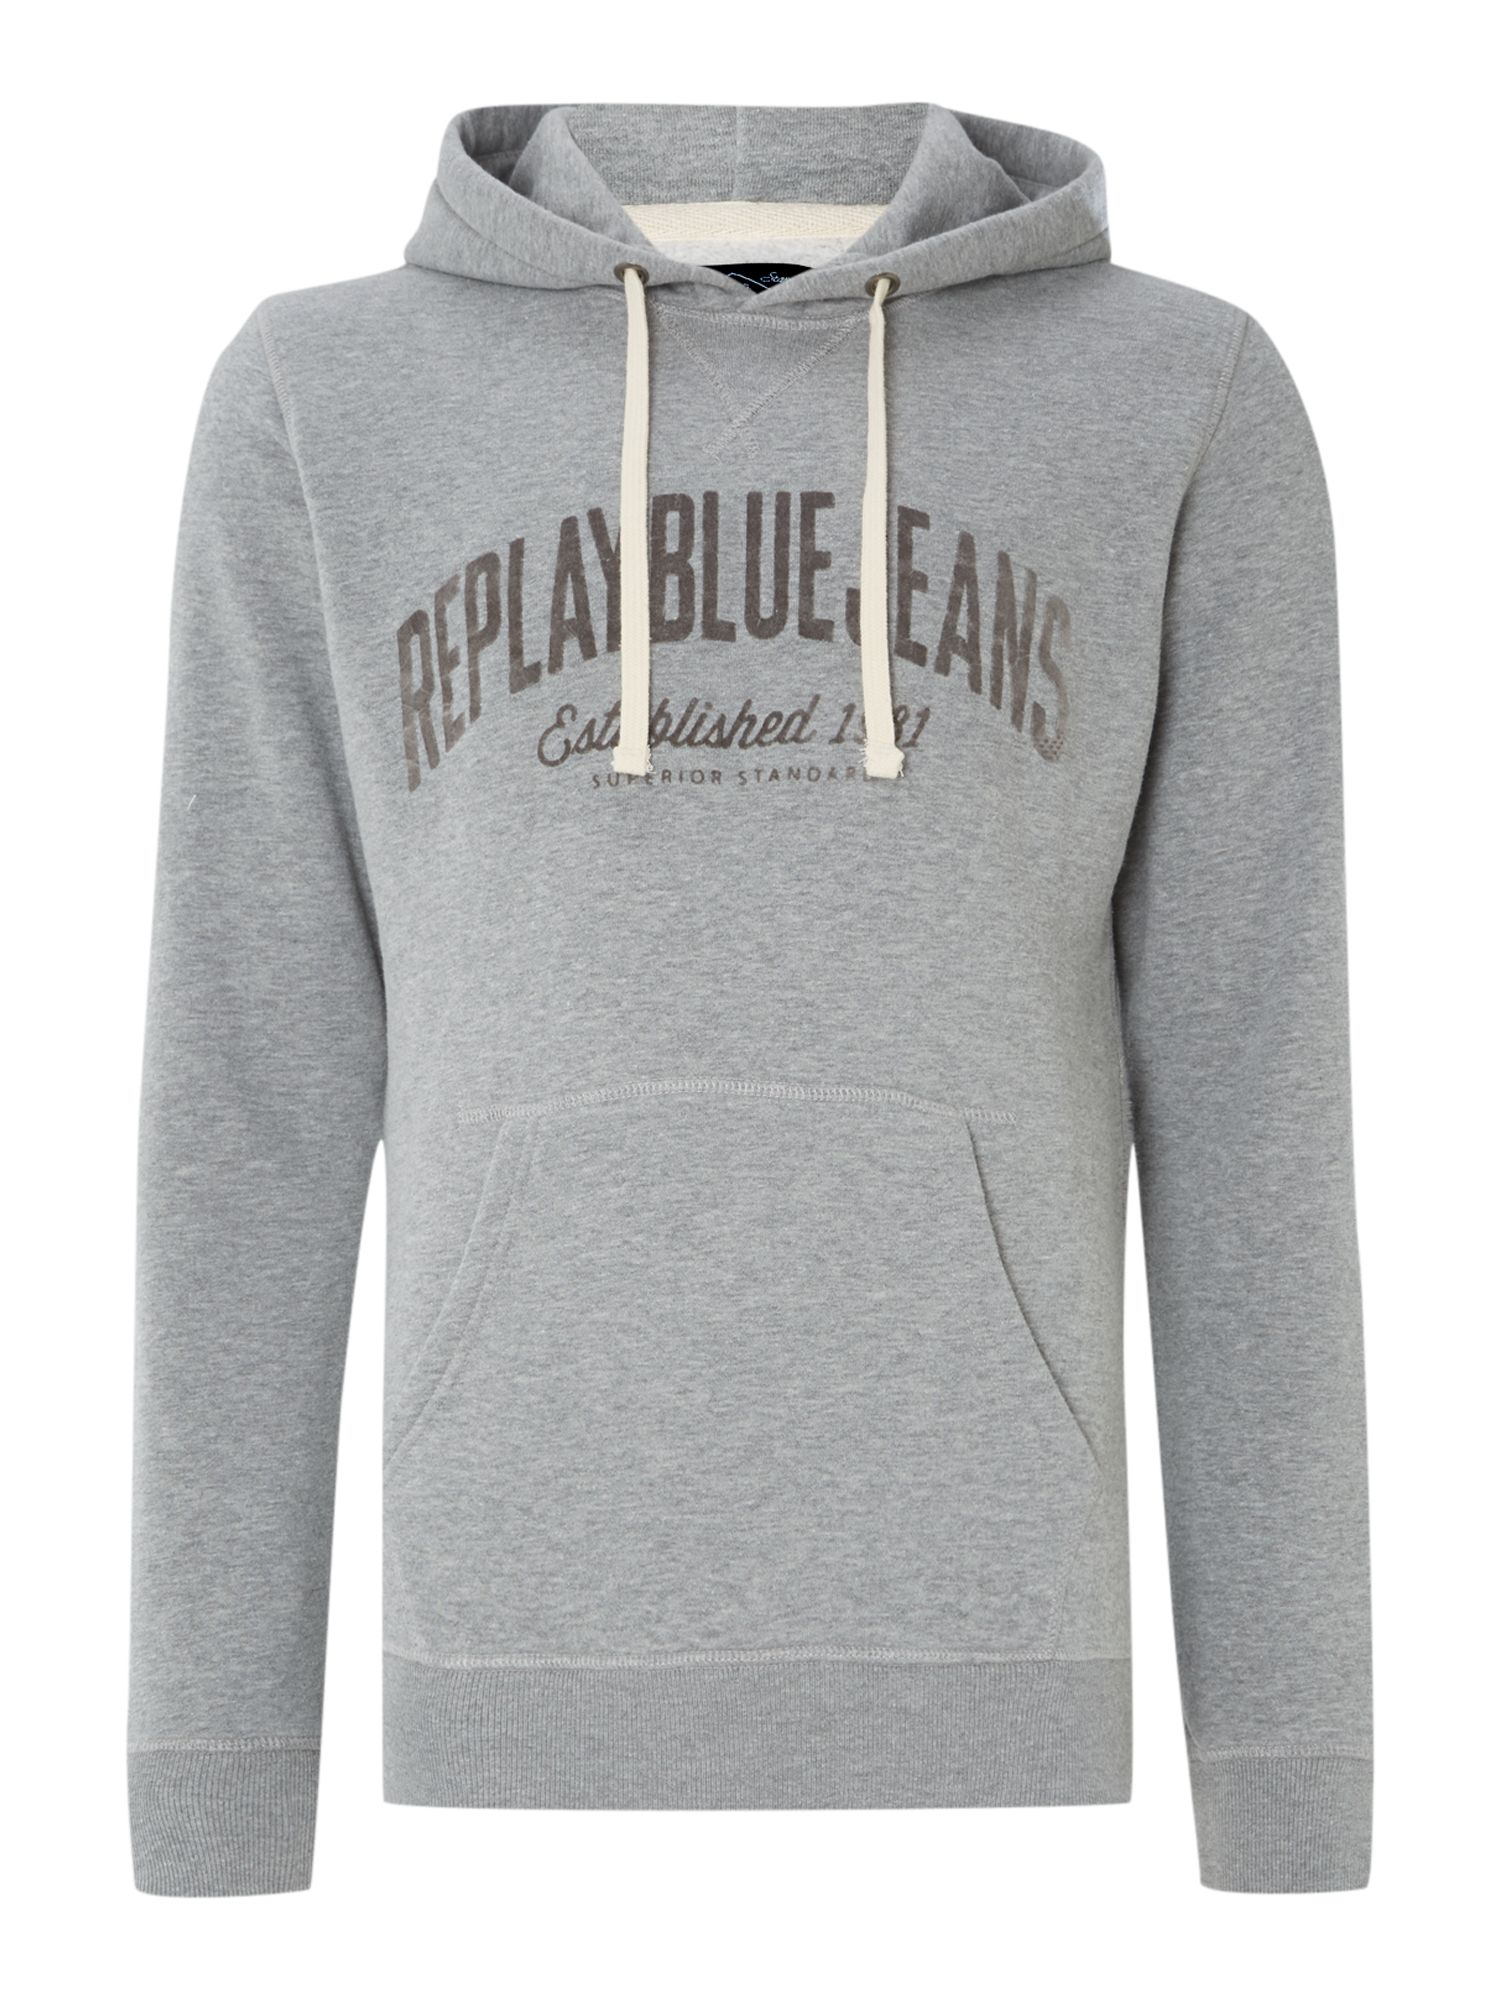 Basic fleece sweatshirt